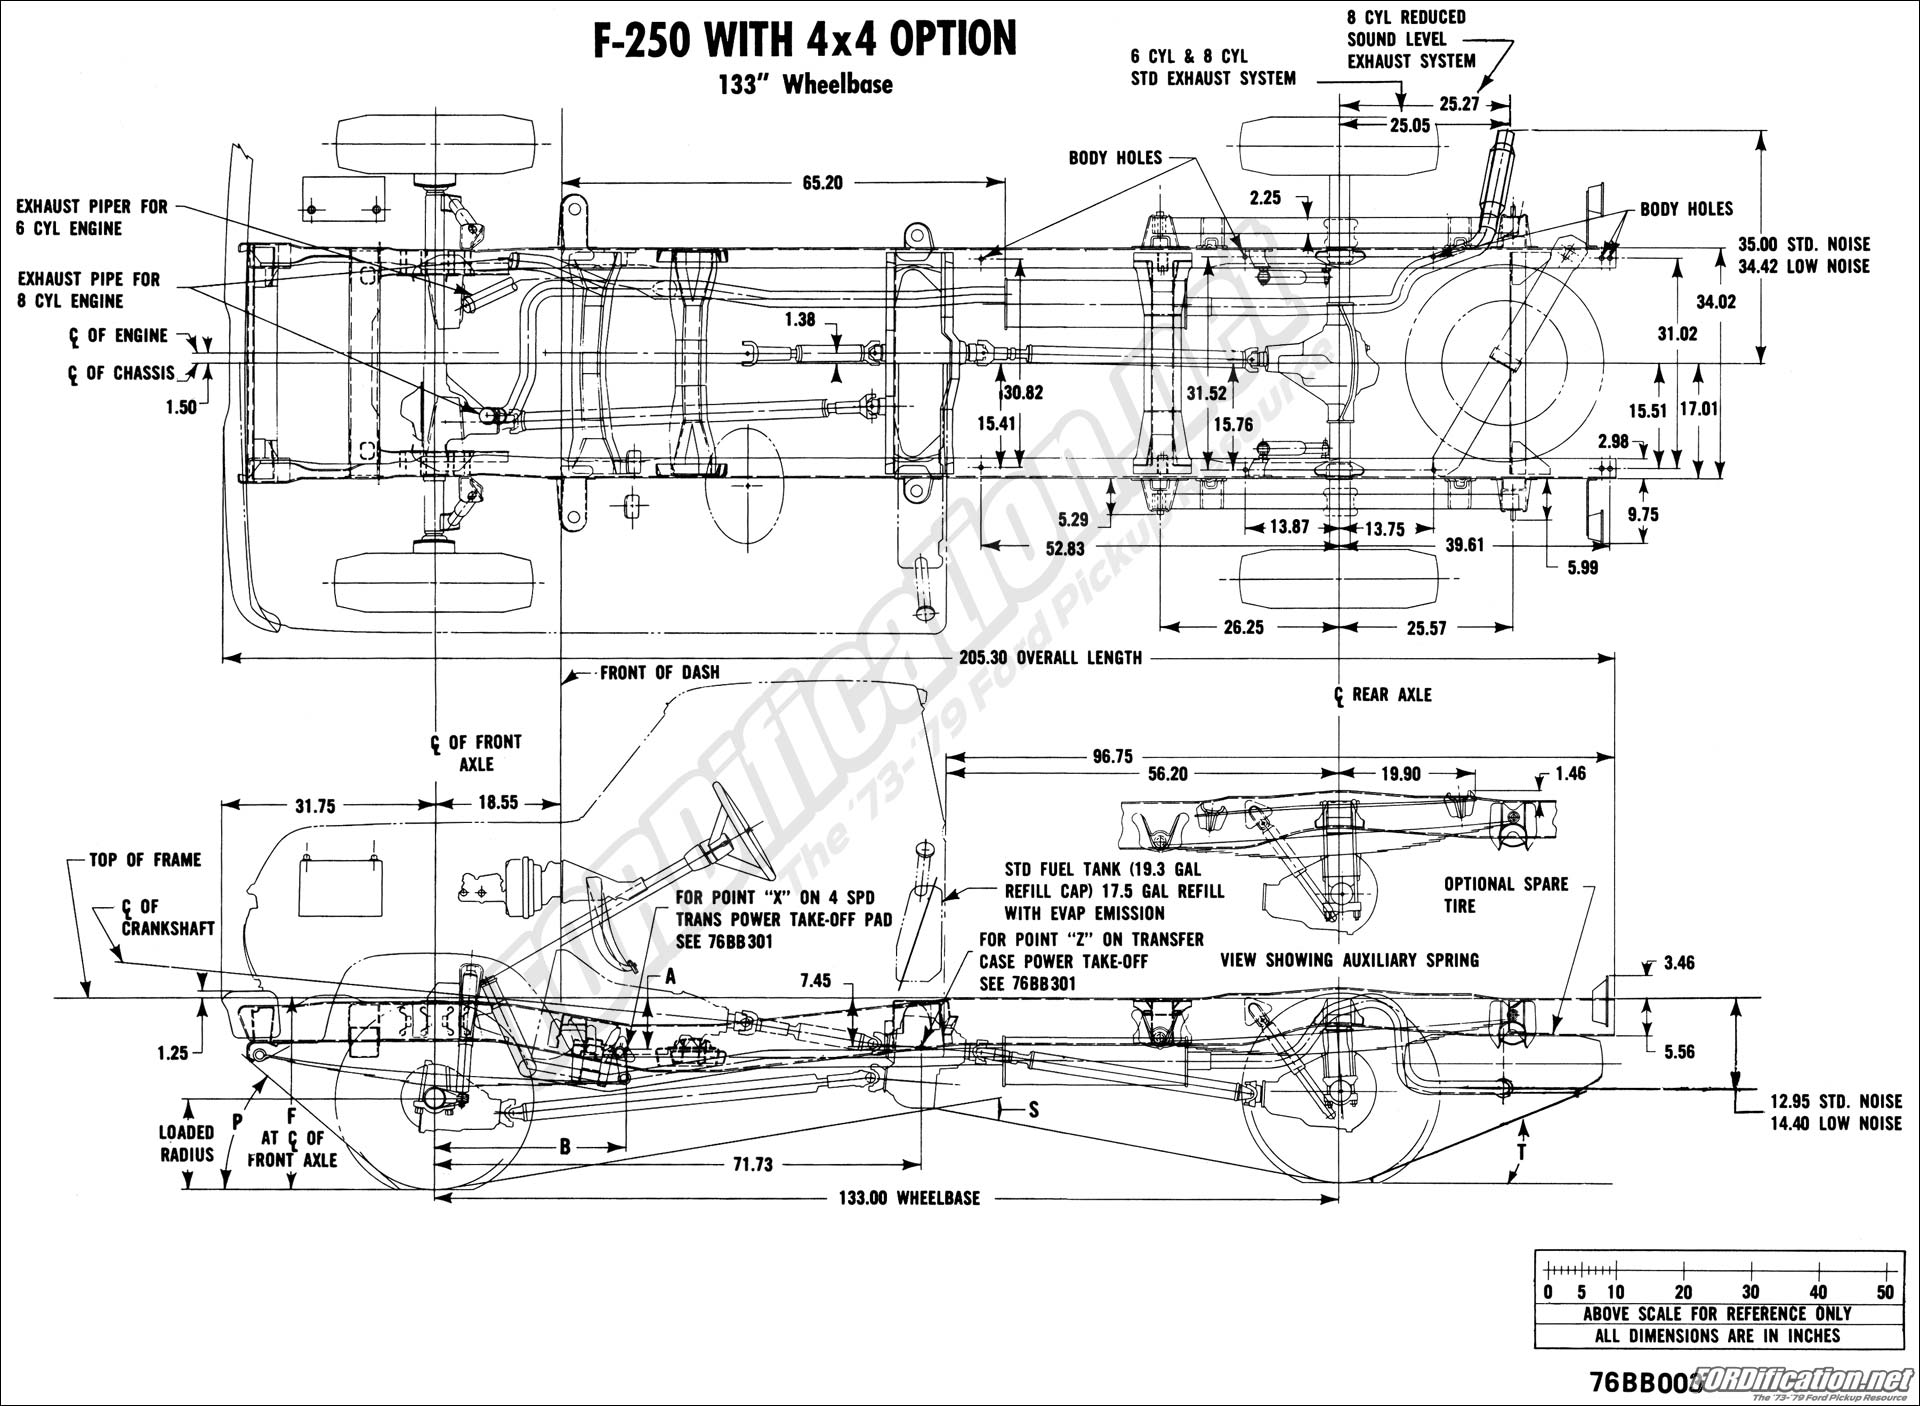 55 59 2nd Series Chevy Pickup Rear End Parts besides 1997 Infiniti Qx4 Wiring Diagram And Electrical System Service And Troubleshooting further The Mighty Wiper Wiring Diagram 3 furthermore Viewtopic likewise Bodybuilder76. on 1955 ford body parts